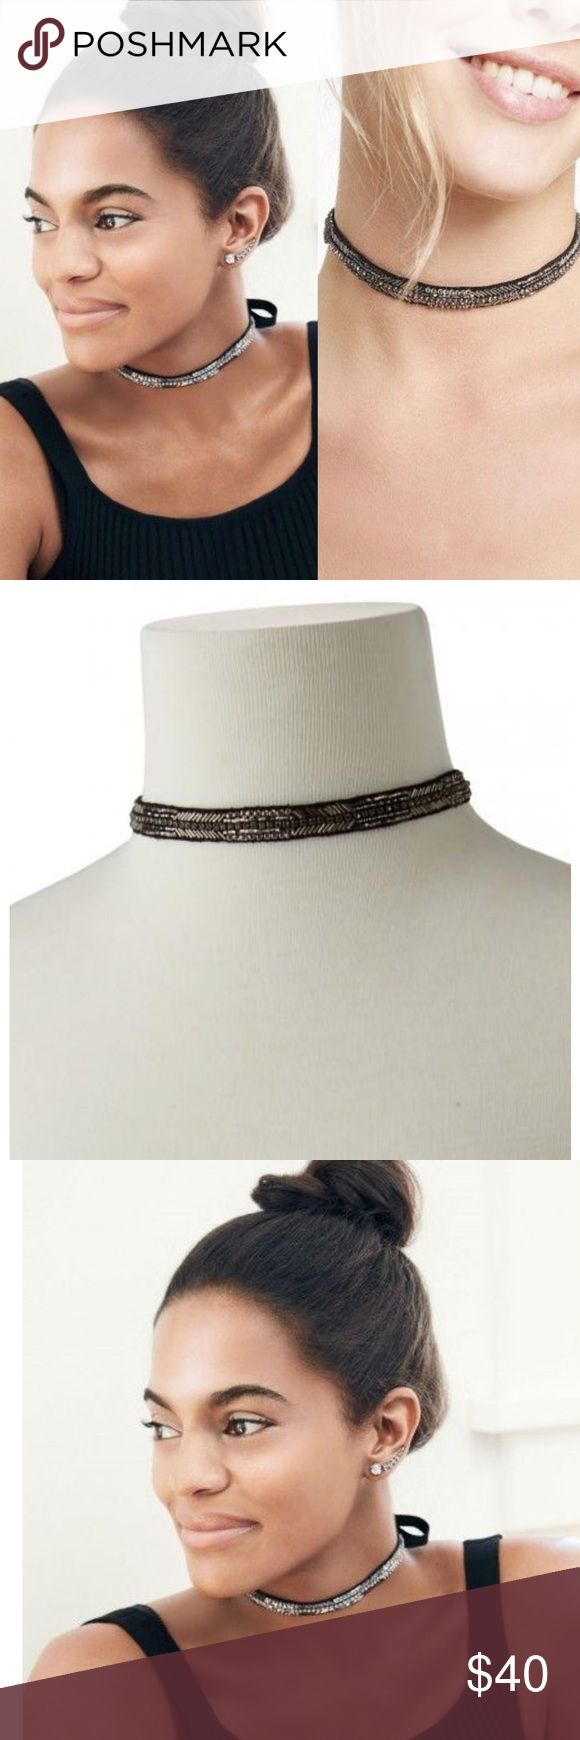 Brand new with box Stella and dot Choker This necklace is stunning with it's unique design and hand sewn beaded embroidery. It's Very versatile. I just bought this and It was recently sold out on stella and dot. Dress this up or down. Ribbon tie closure. Beautiful Stella & Dot Jewelry Necklaces